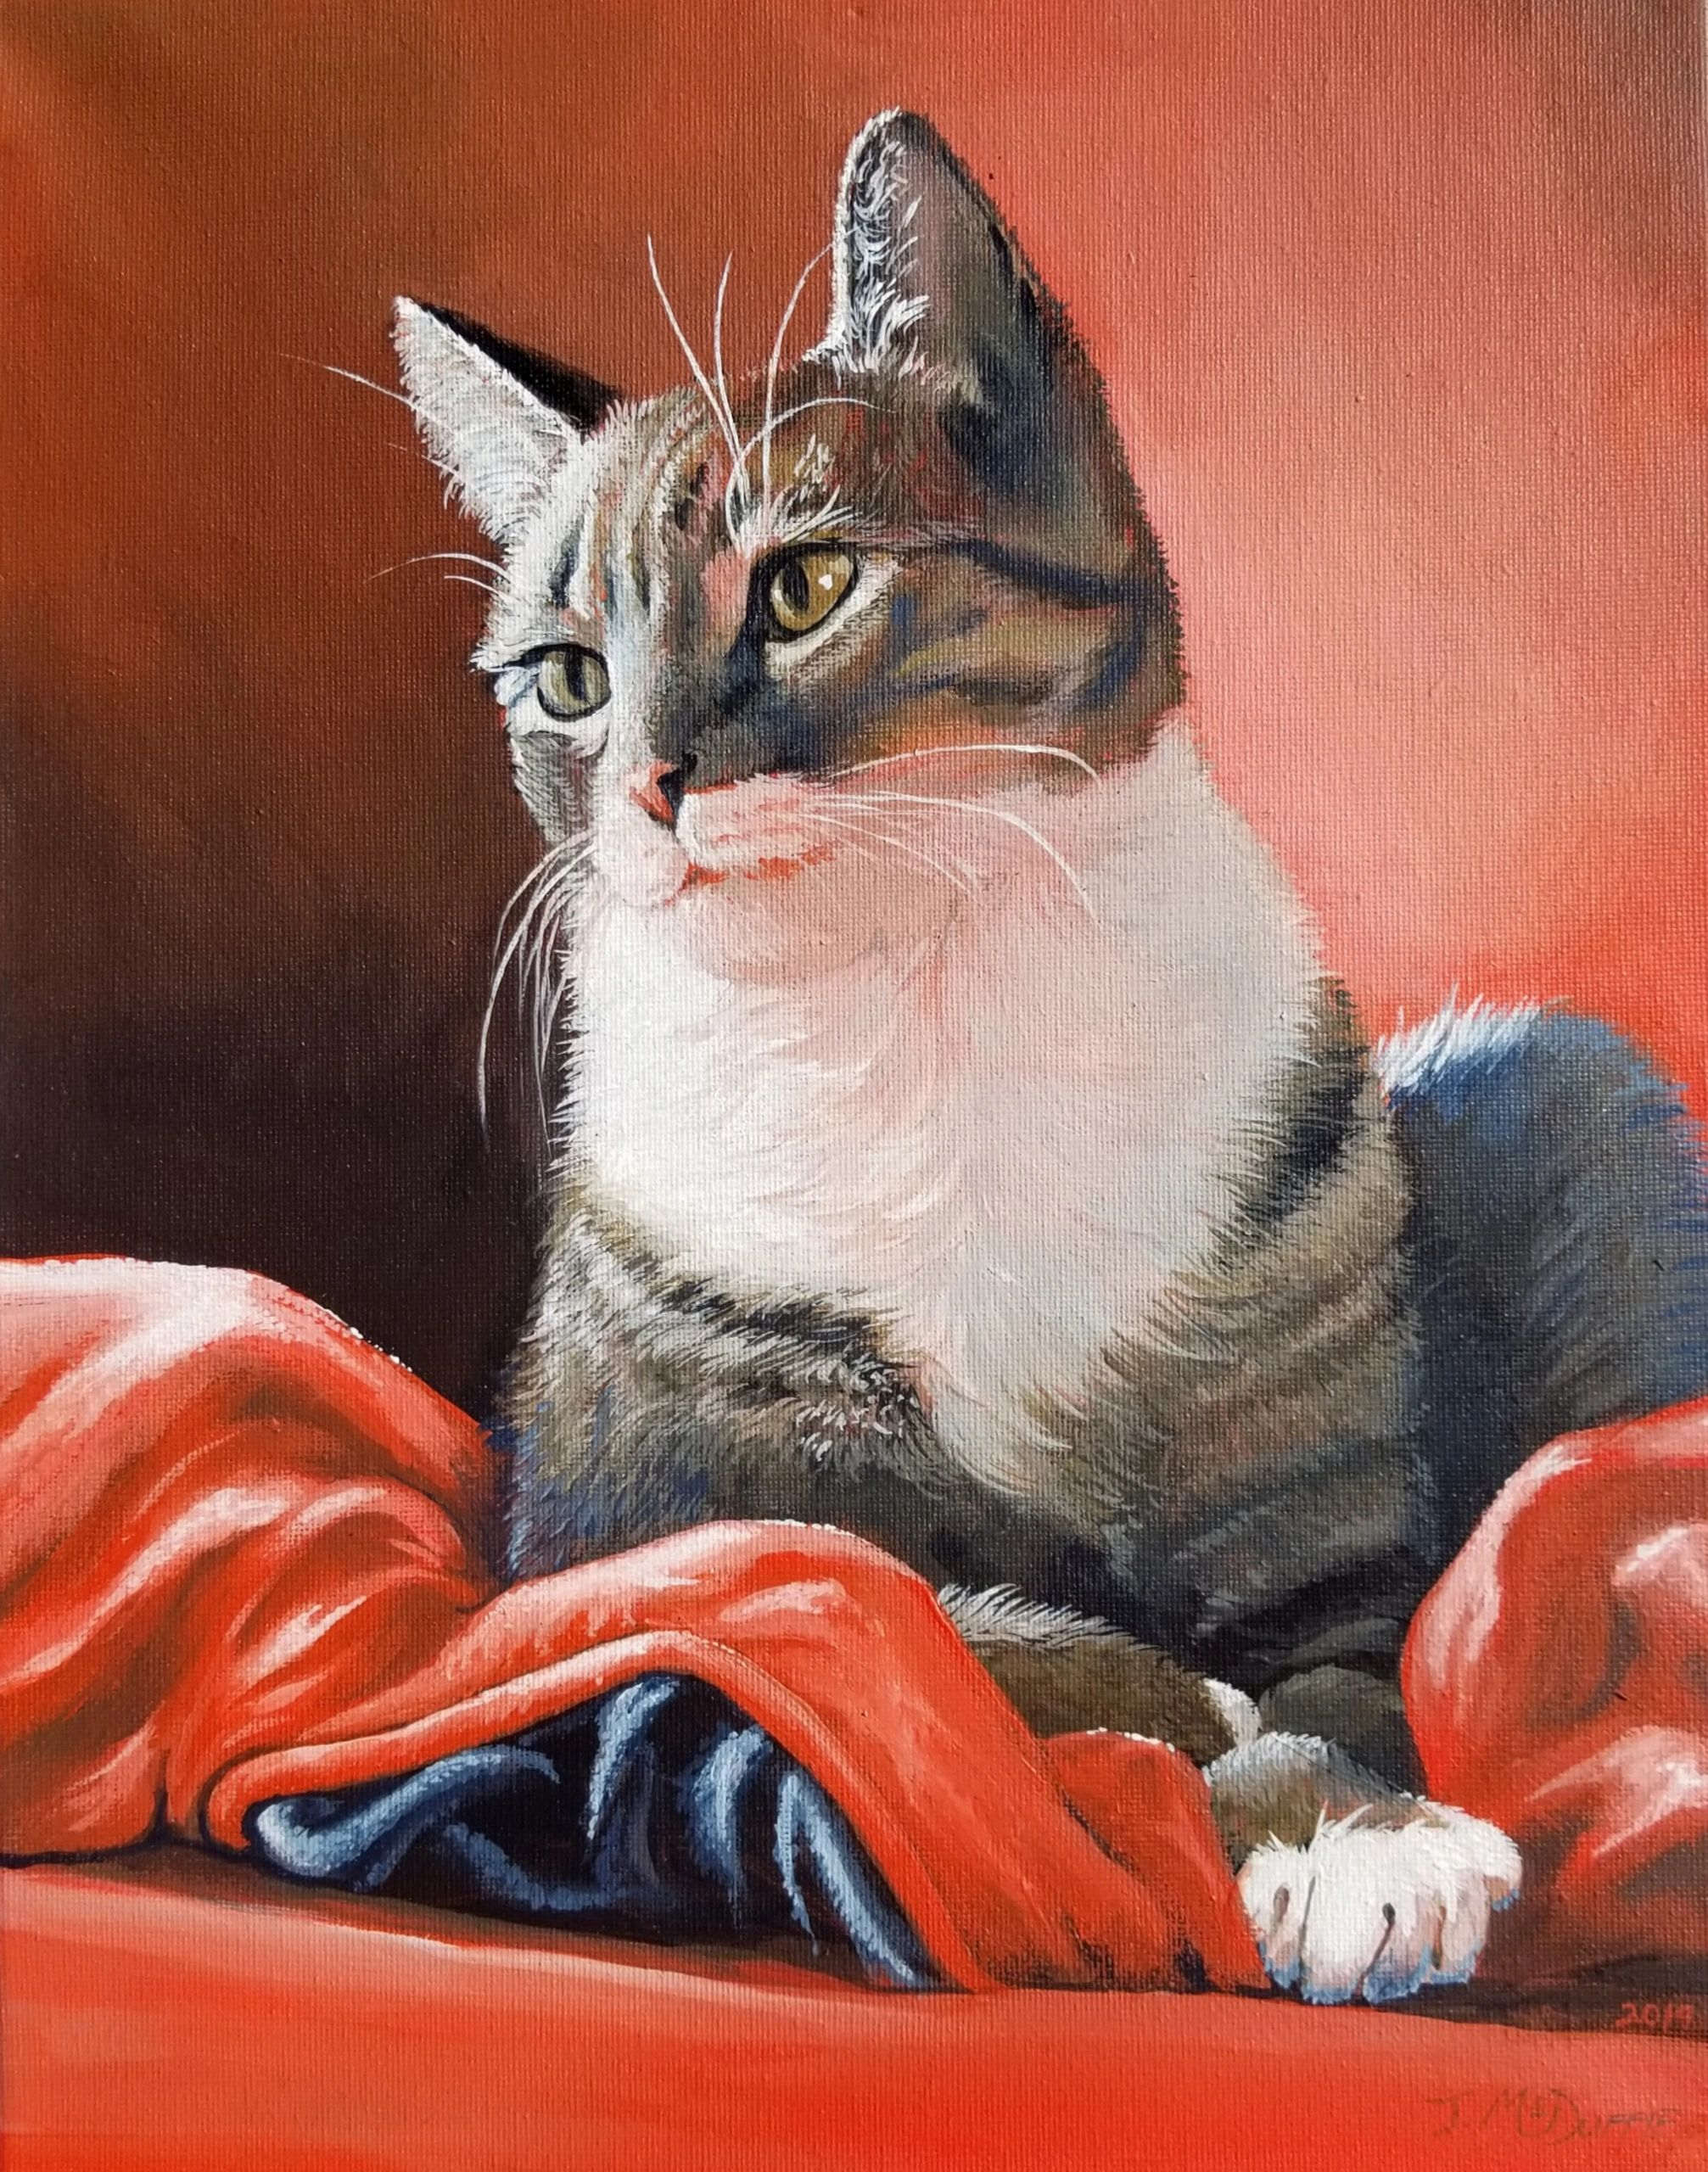 Tabby cat kitten acrylic painting on canvas. Original artwork from Jennifer McDuffie